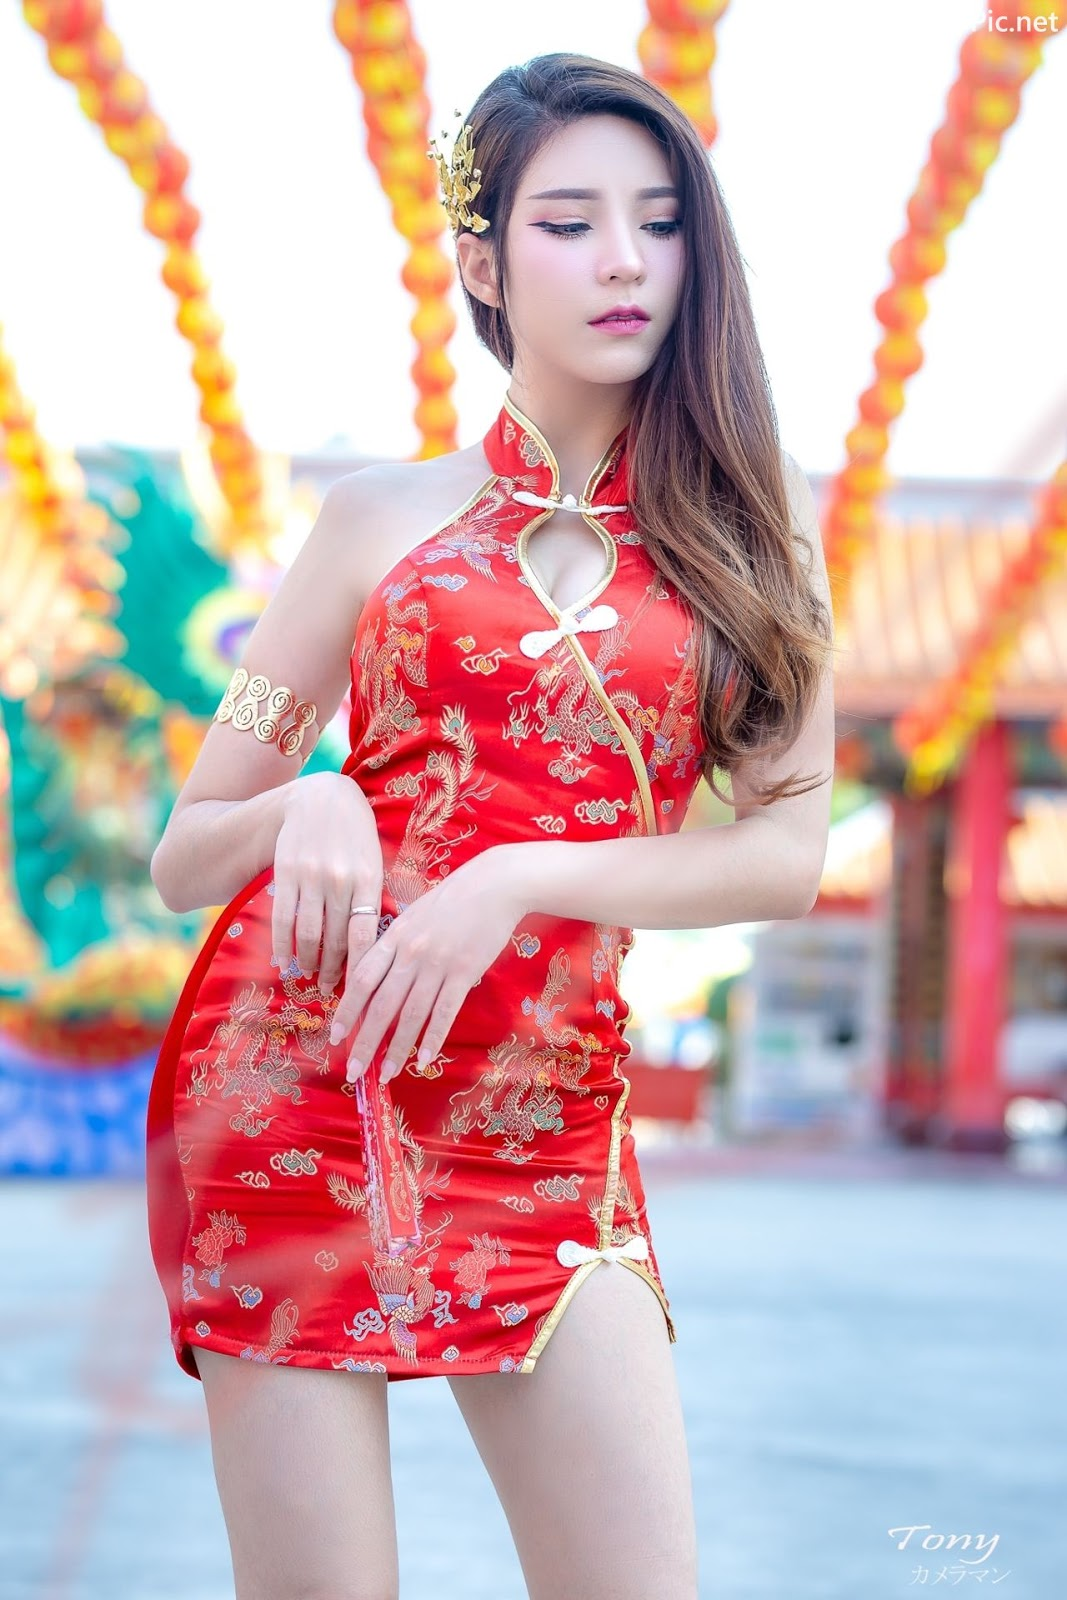 Image-Thailand-Hot-Model-Janet-Kanokwan-Saesim-Sexy-Chinese-Girl-Red-Dress-Traditional-TruePic.net- Picture-7